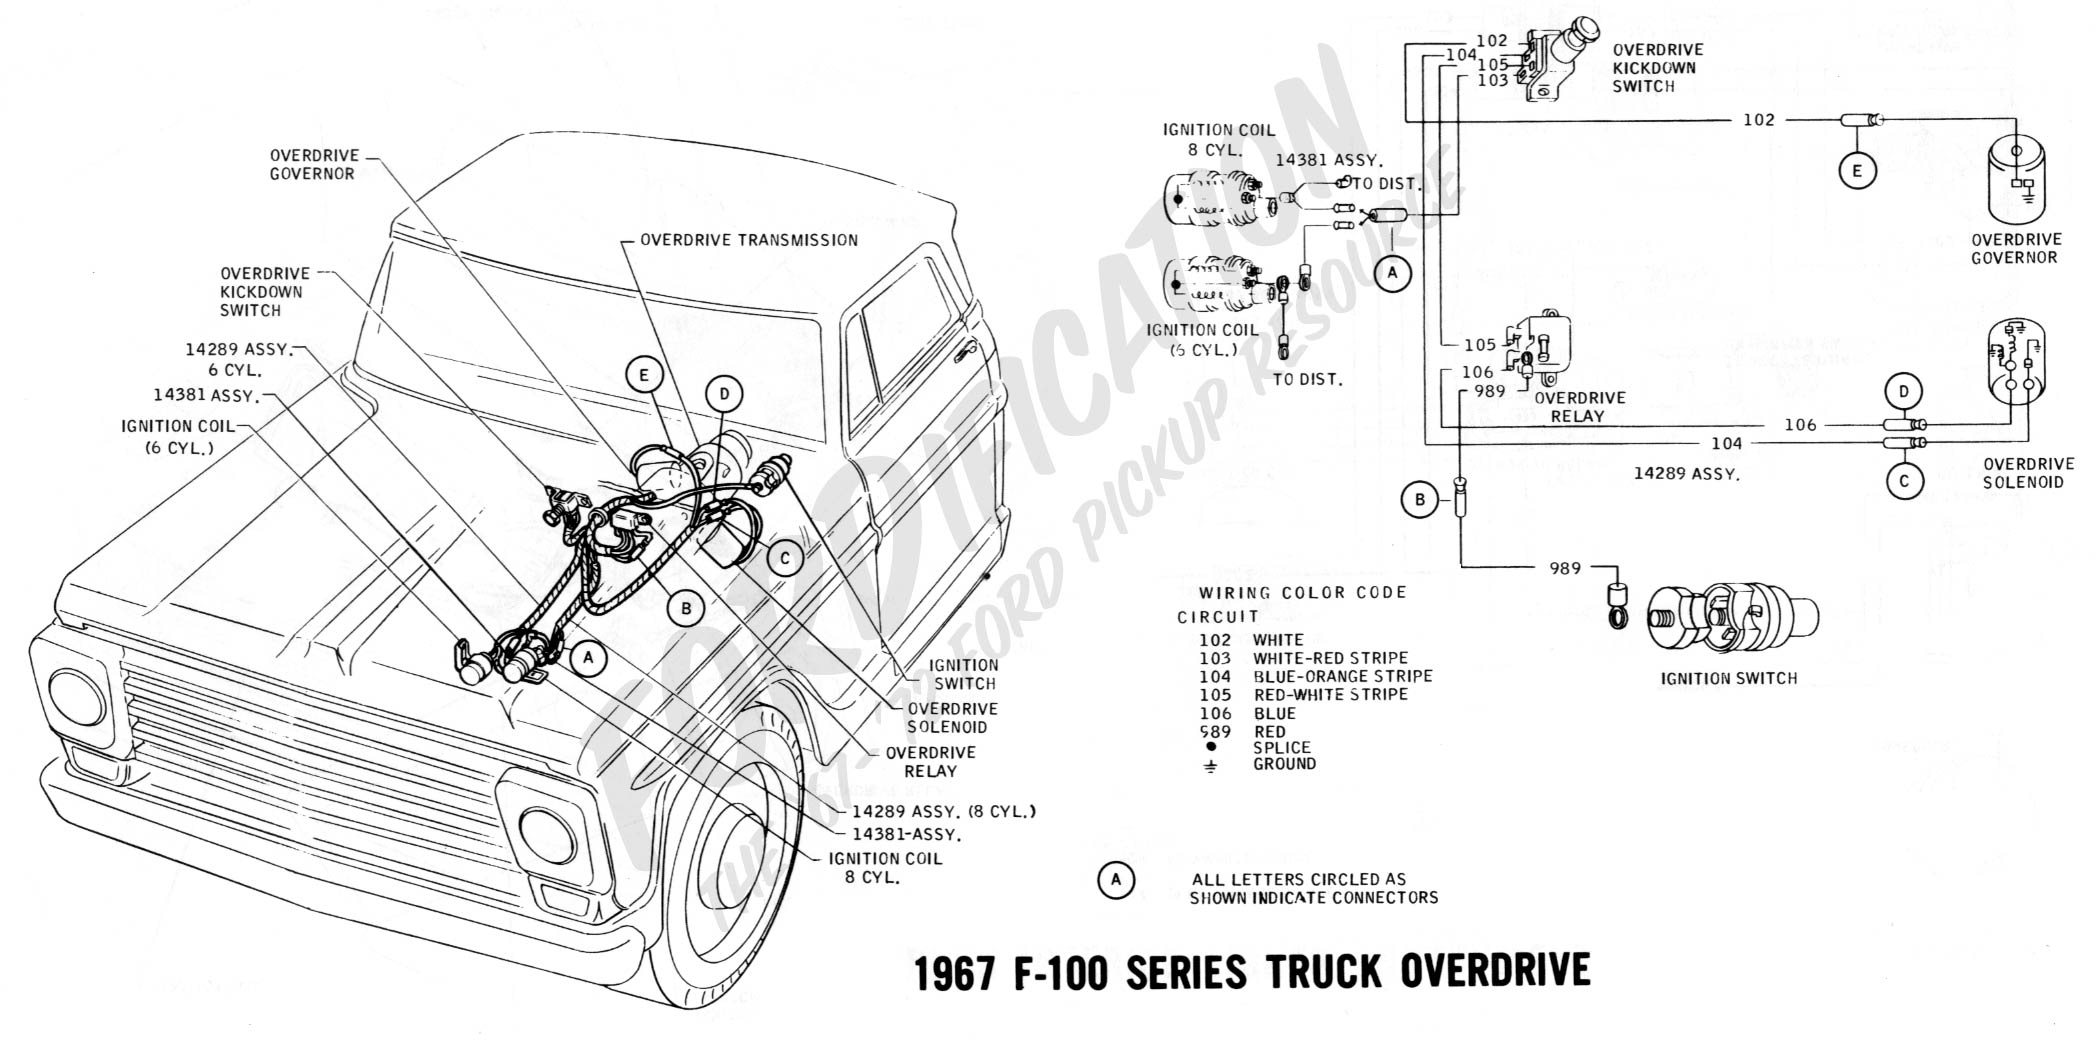 Chevy Truck Wiring Diagram Moreover 1955 Chevy Ignition Switch Wiring